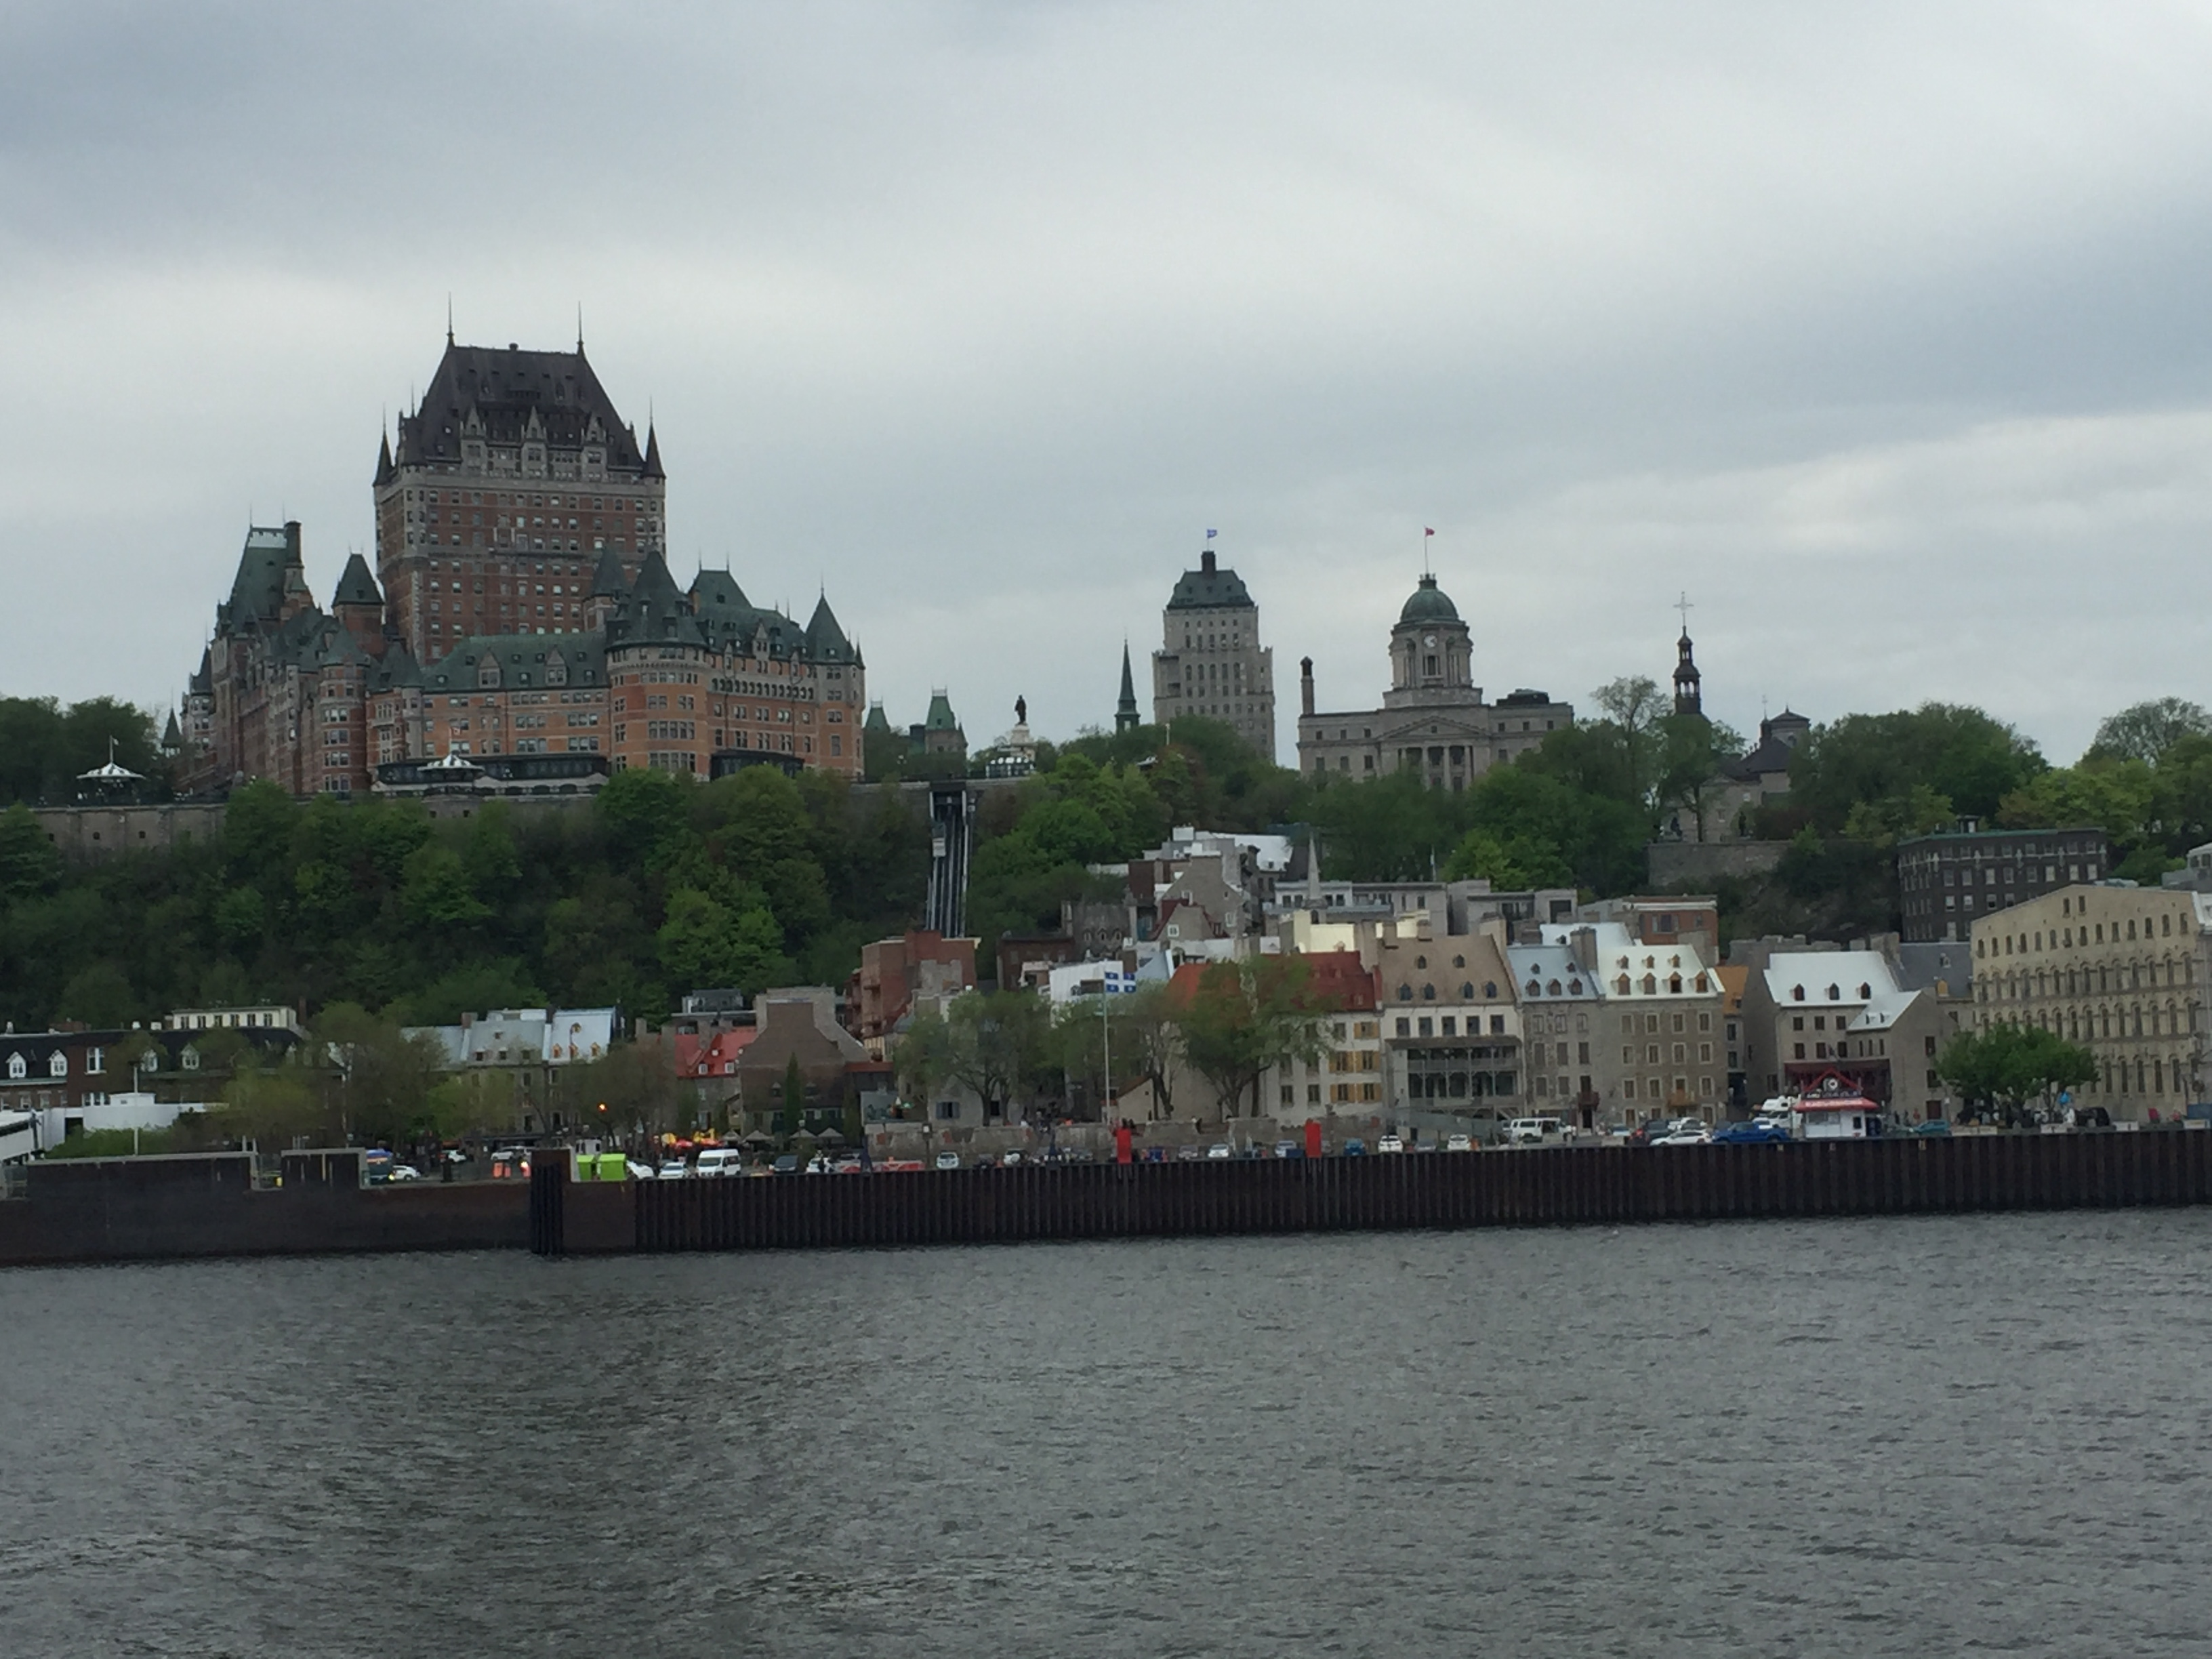 Crossing the St. Lawrence